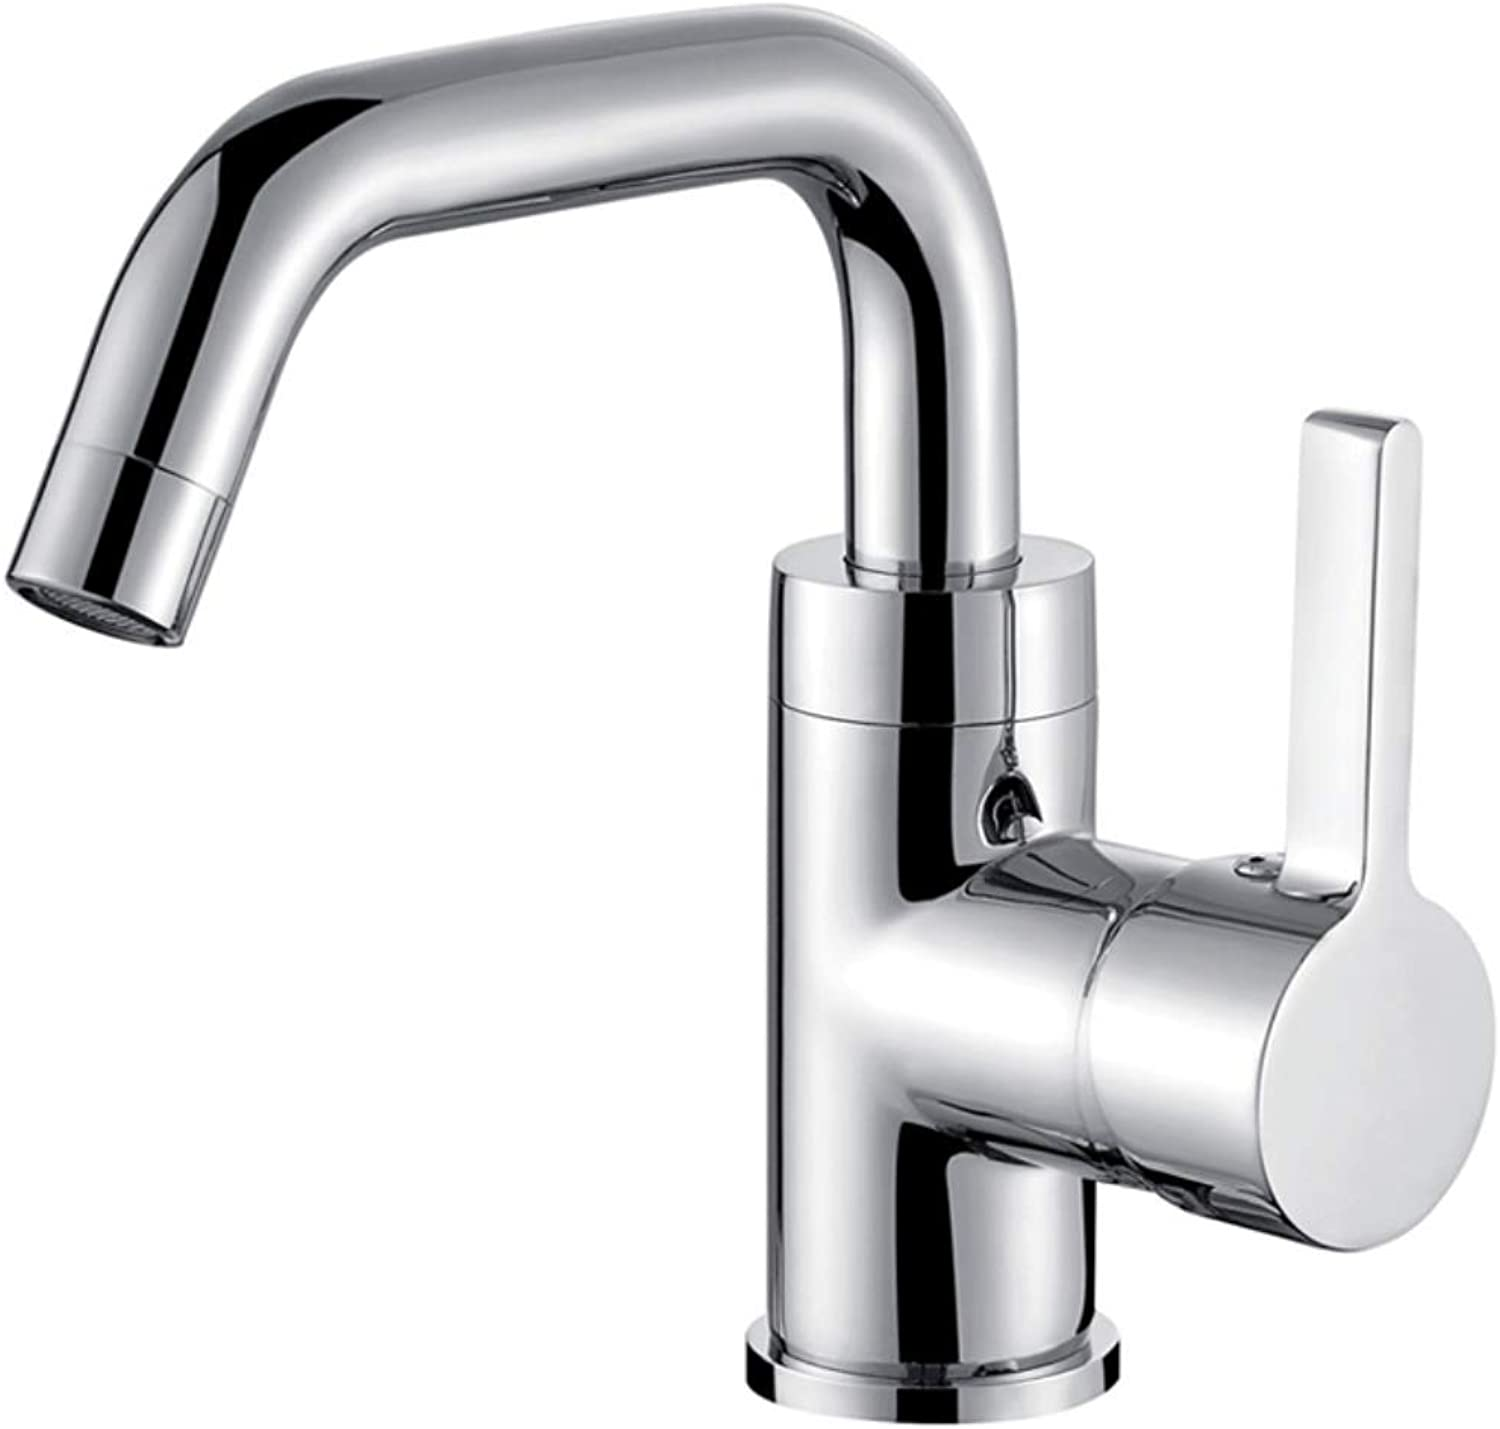 GROHES Mixer Tap For Kitchen Sink Modern Single Lever Faucets Modern Chrome Bathroom Sink Taps Basin Mixer Faucet Medium High Spout